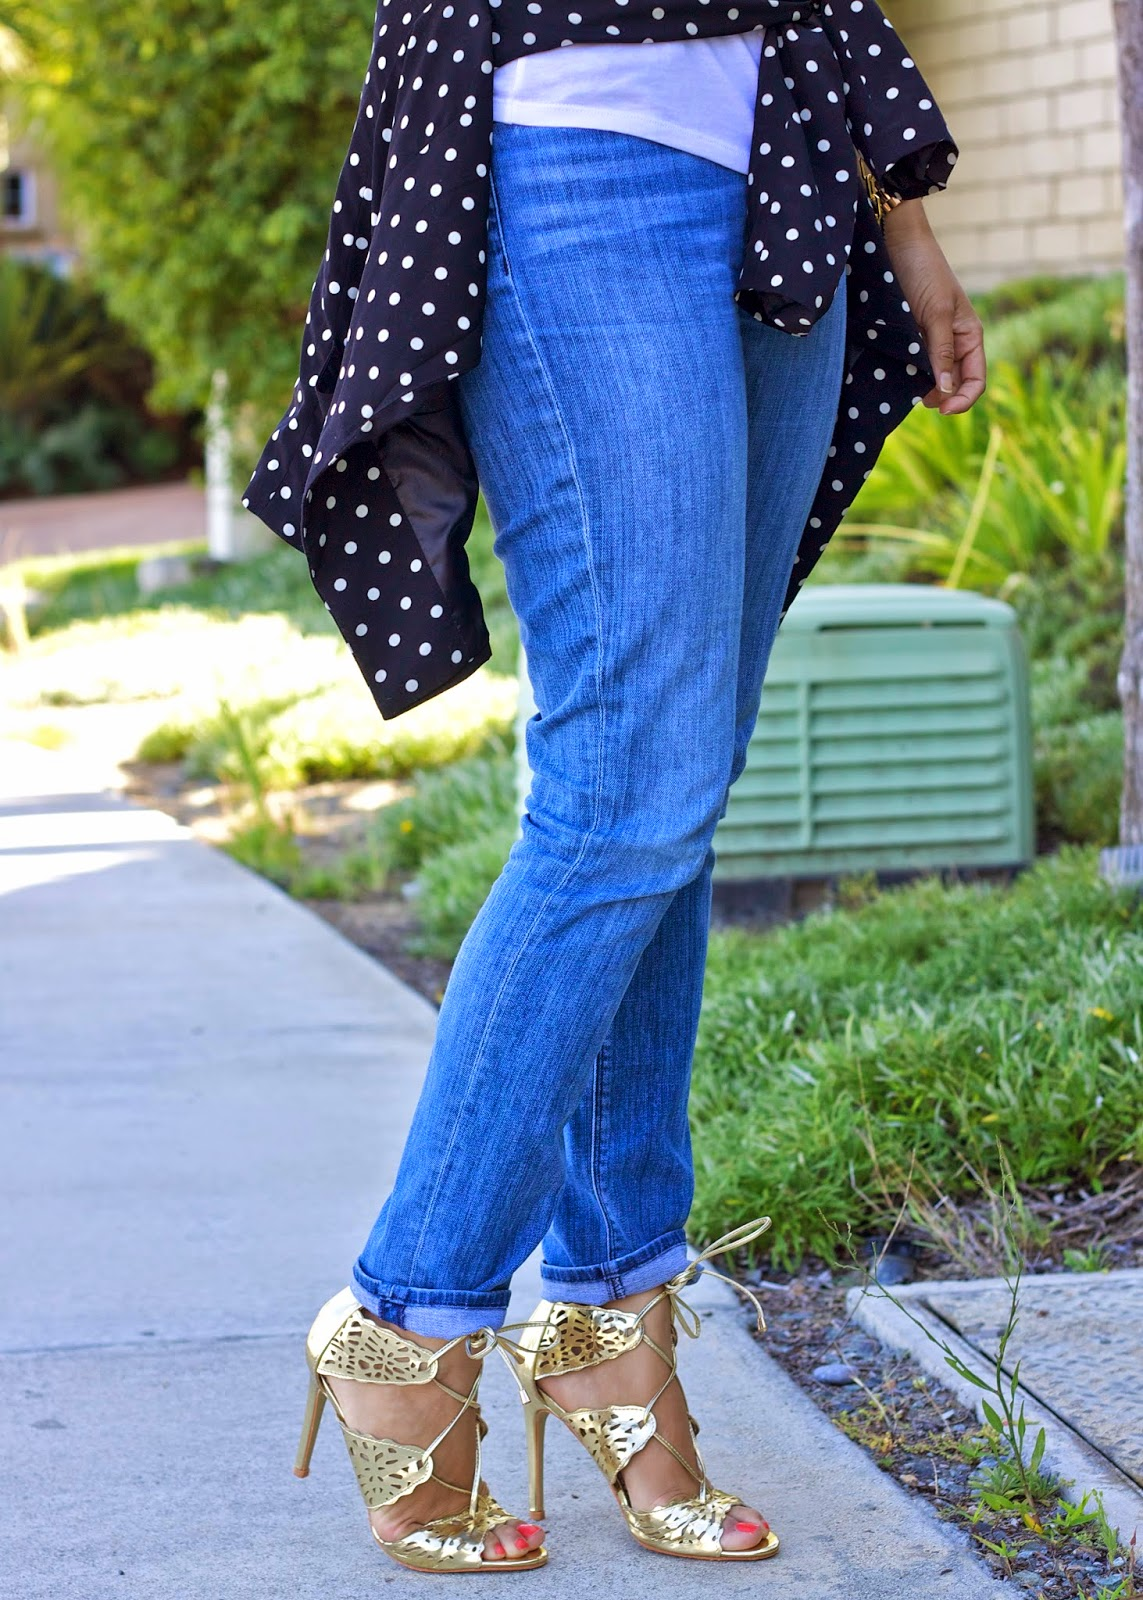 gold lace up sandals, gold heel sandals, hudson gia jeans, hudson skinny jeans blogger, san diego blogger, fashion week sd